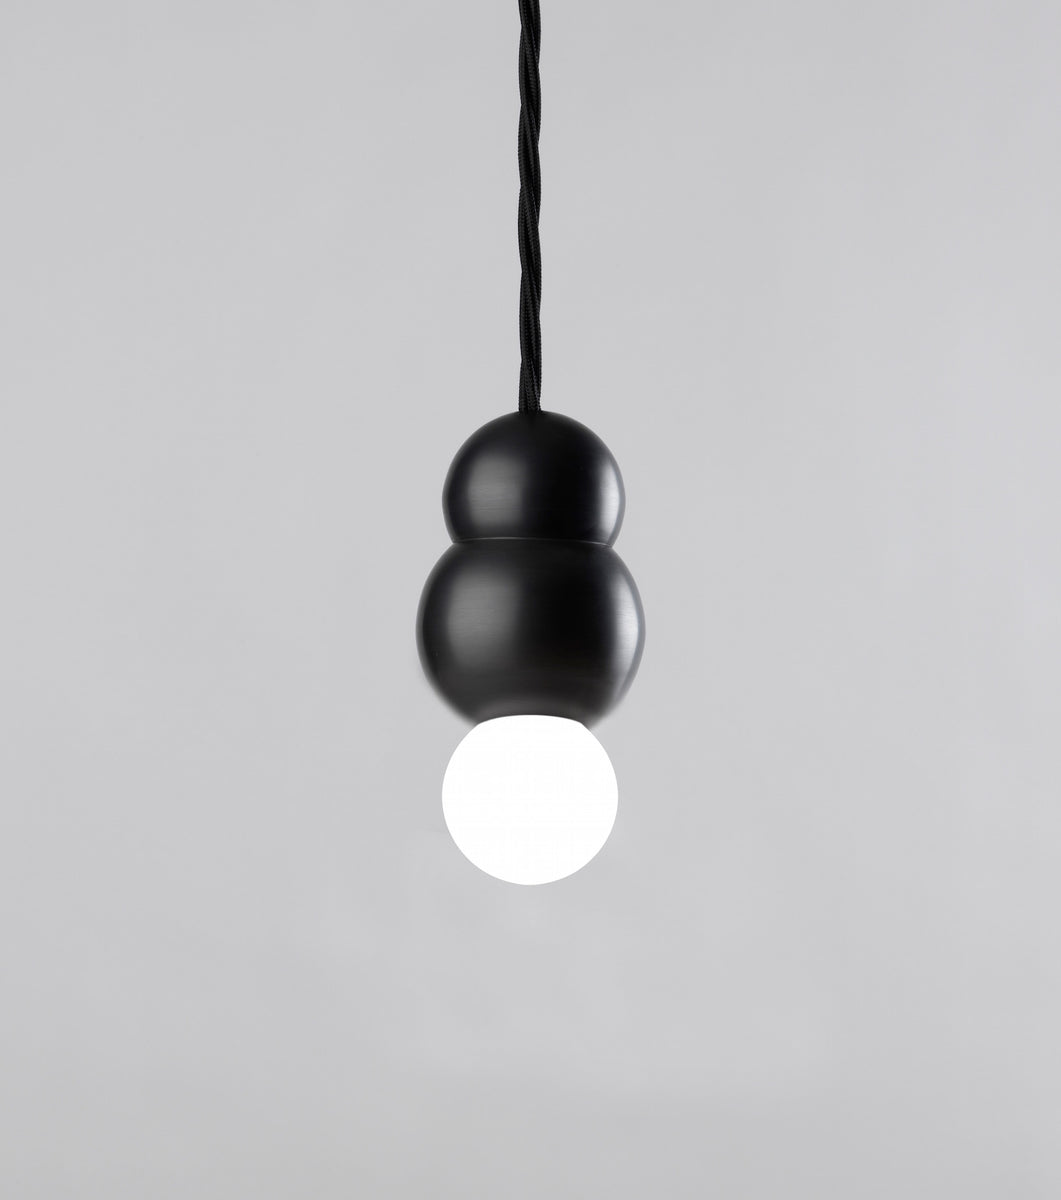 Modern Finished Ball Light Small Flex Black Patinated Michael Anastassiades - Image 1